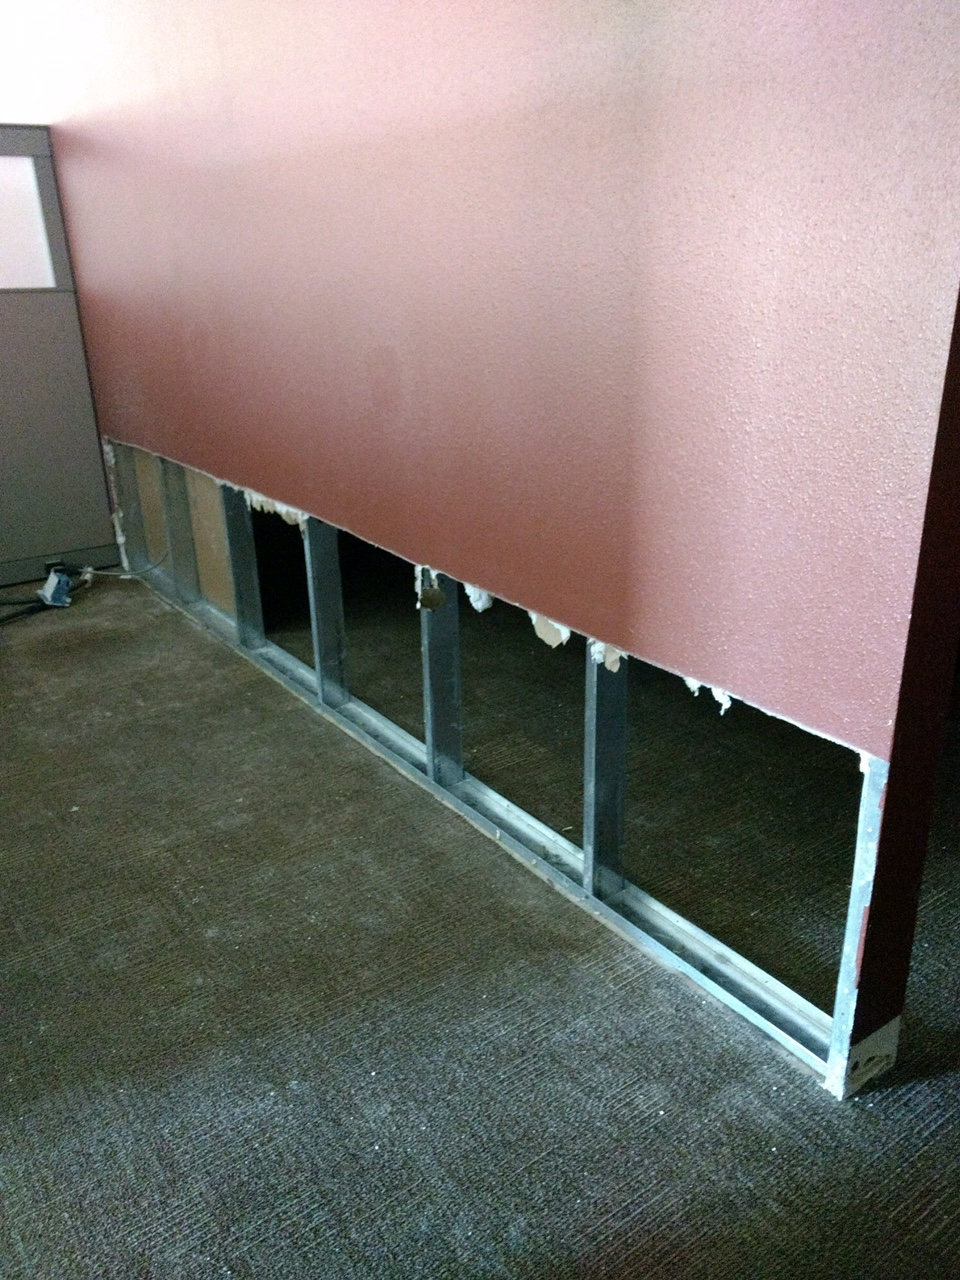 Drywall project at store in Burbank, CA. Demolition down to metal studs to upgrade drywall finish to level 5. Some framing. Carpet and flooring upgrade.